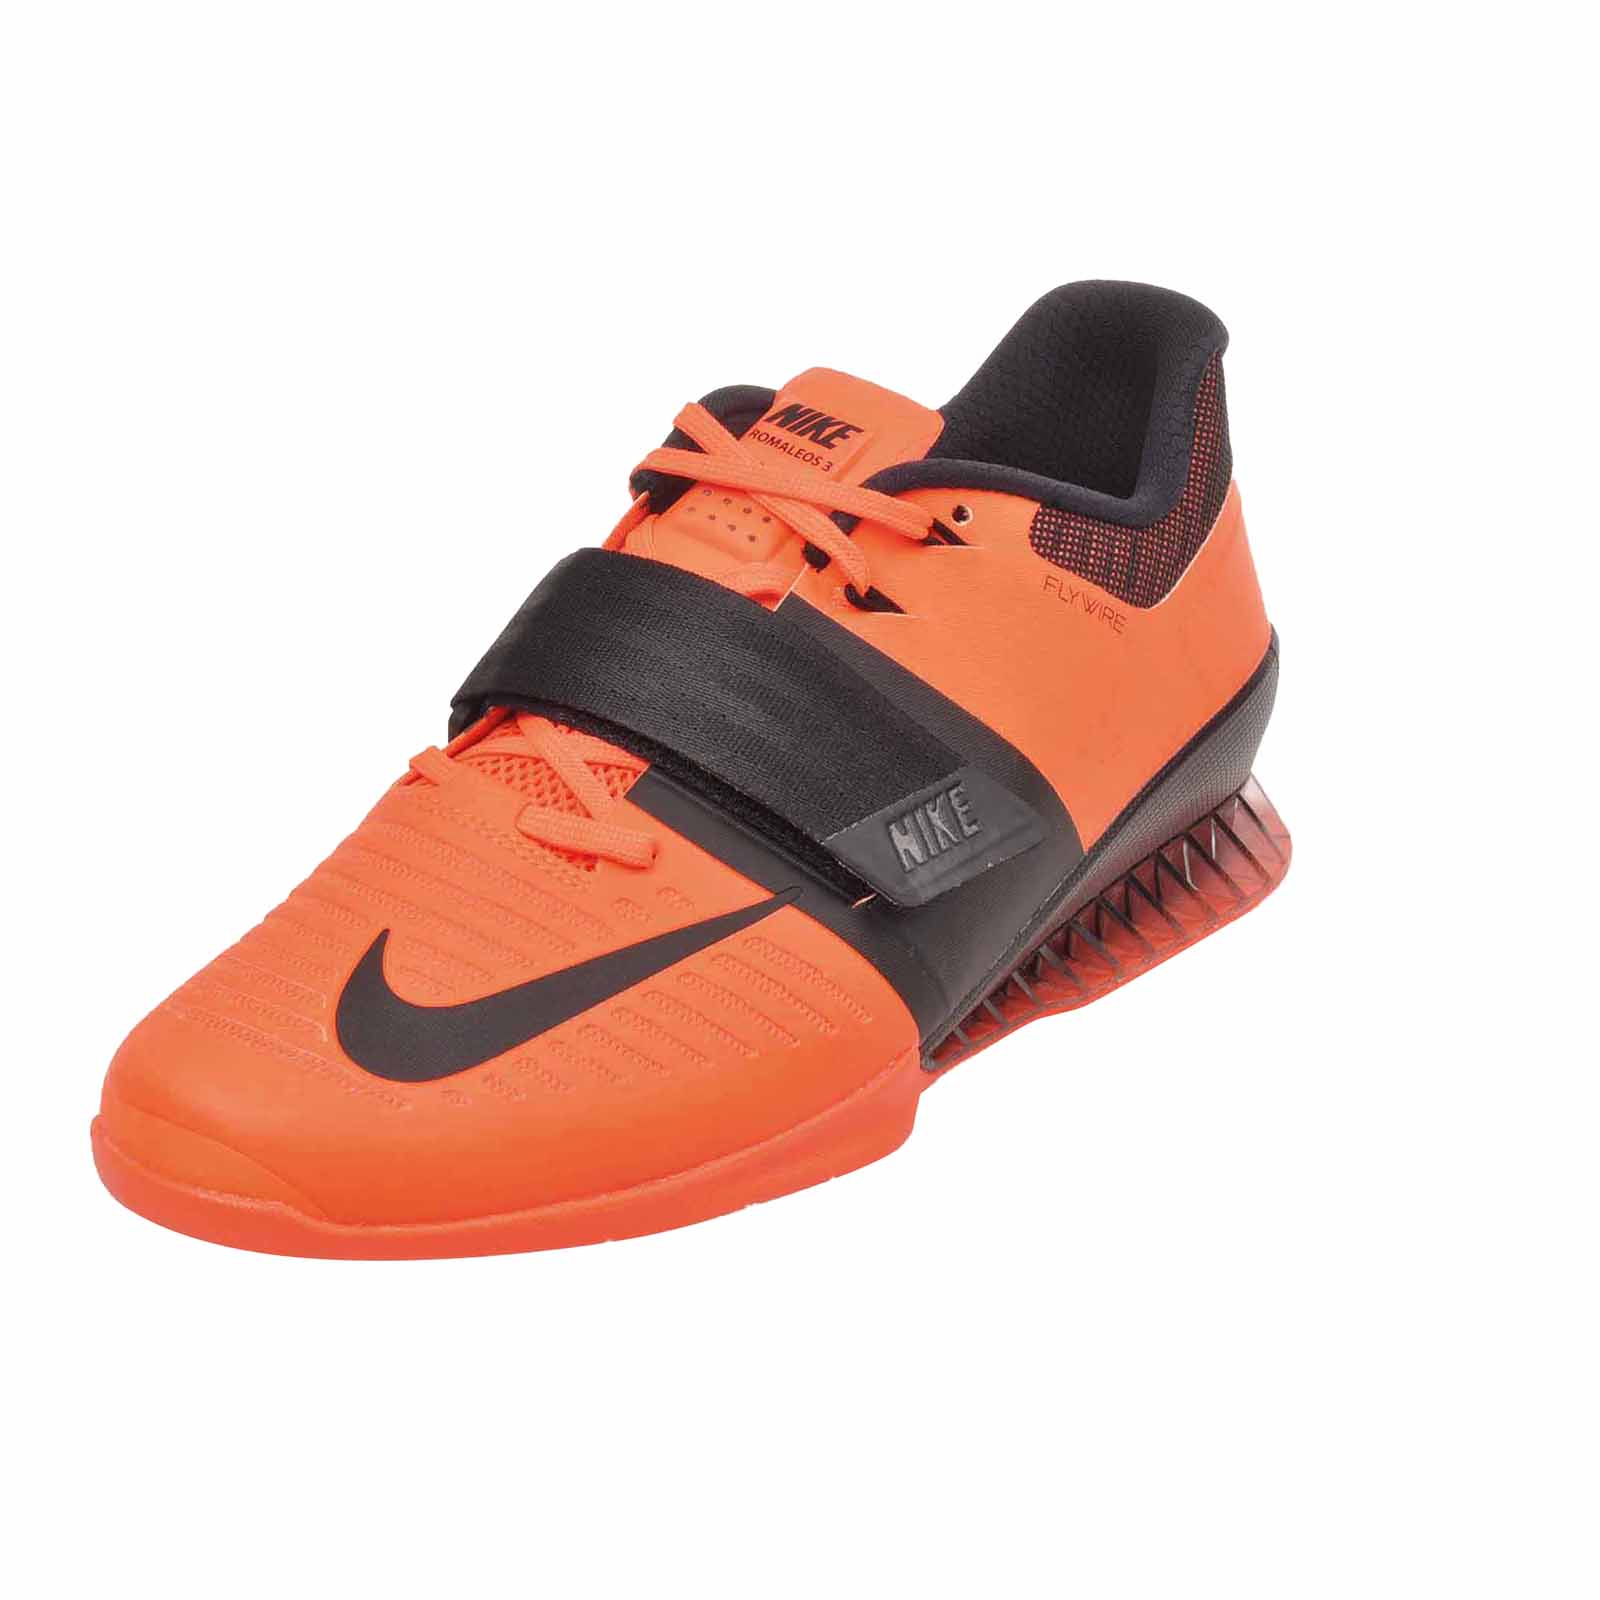 244961a4bb7b9 Details about Nike Romaleos 3 Cross Training Mens Weightlifting Shoes  Bright Orange 852933-801